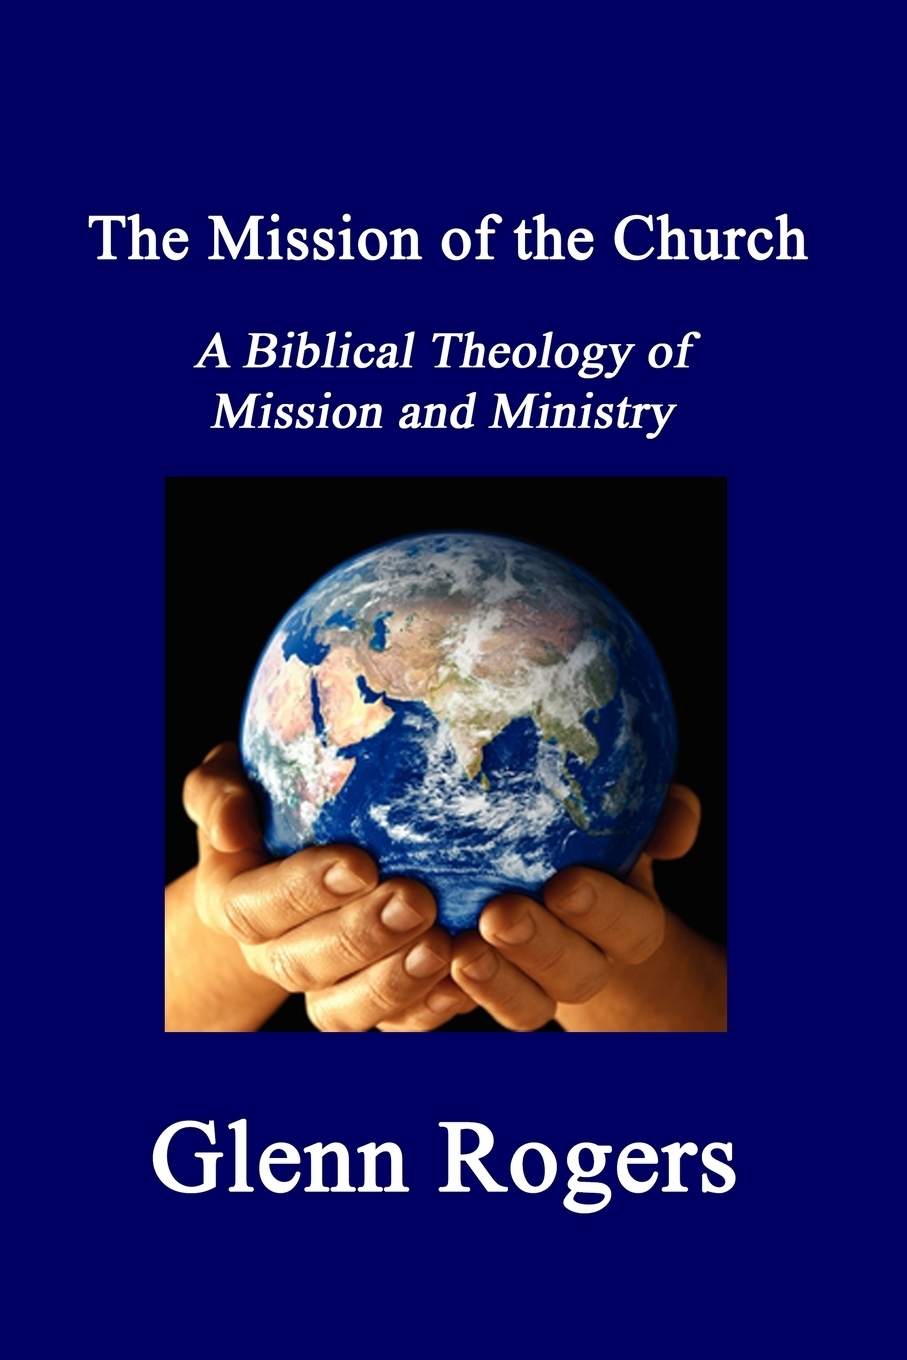 лучшая цена Glenn Rogers The Mission of the Church. A Biblical Theology of Mission and Ministry